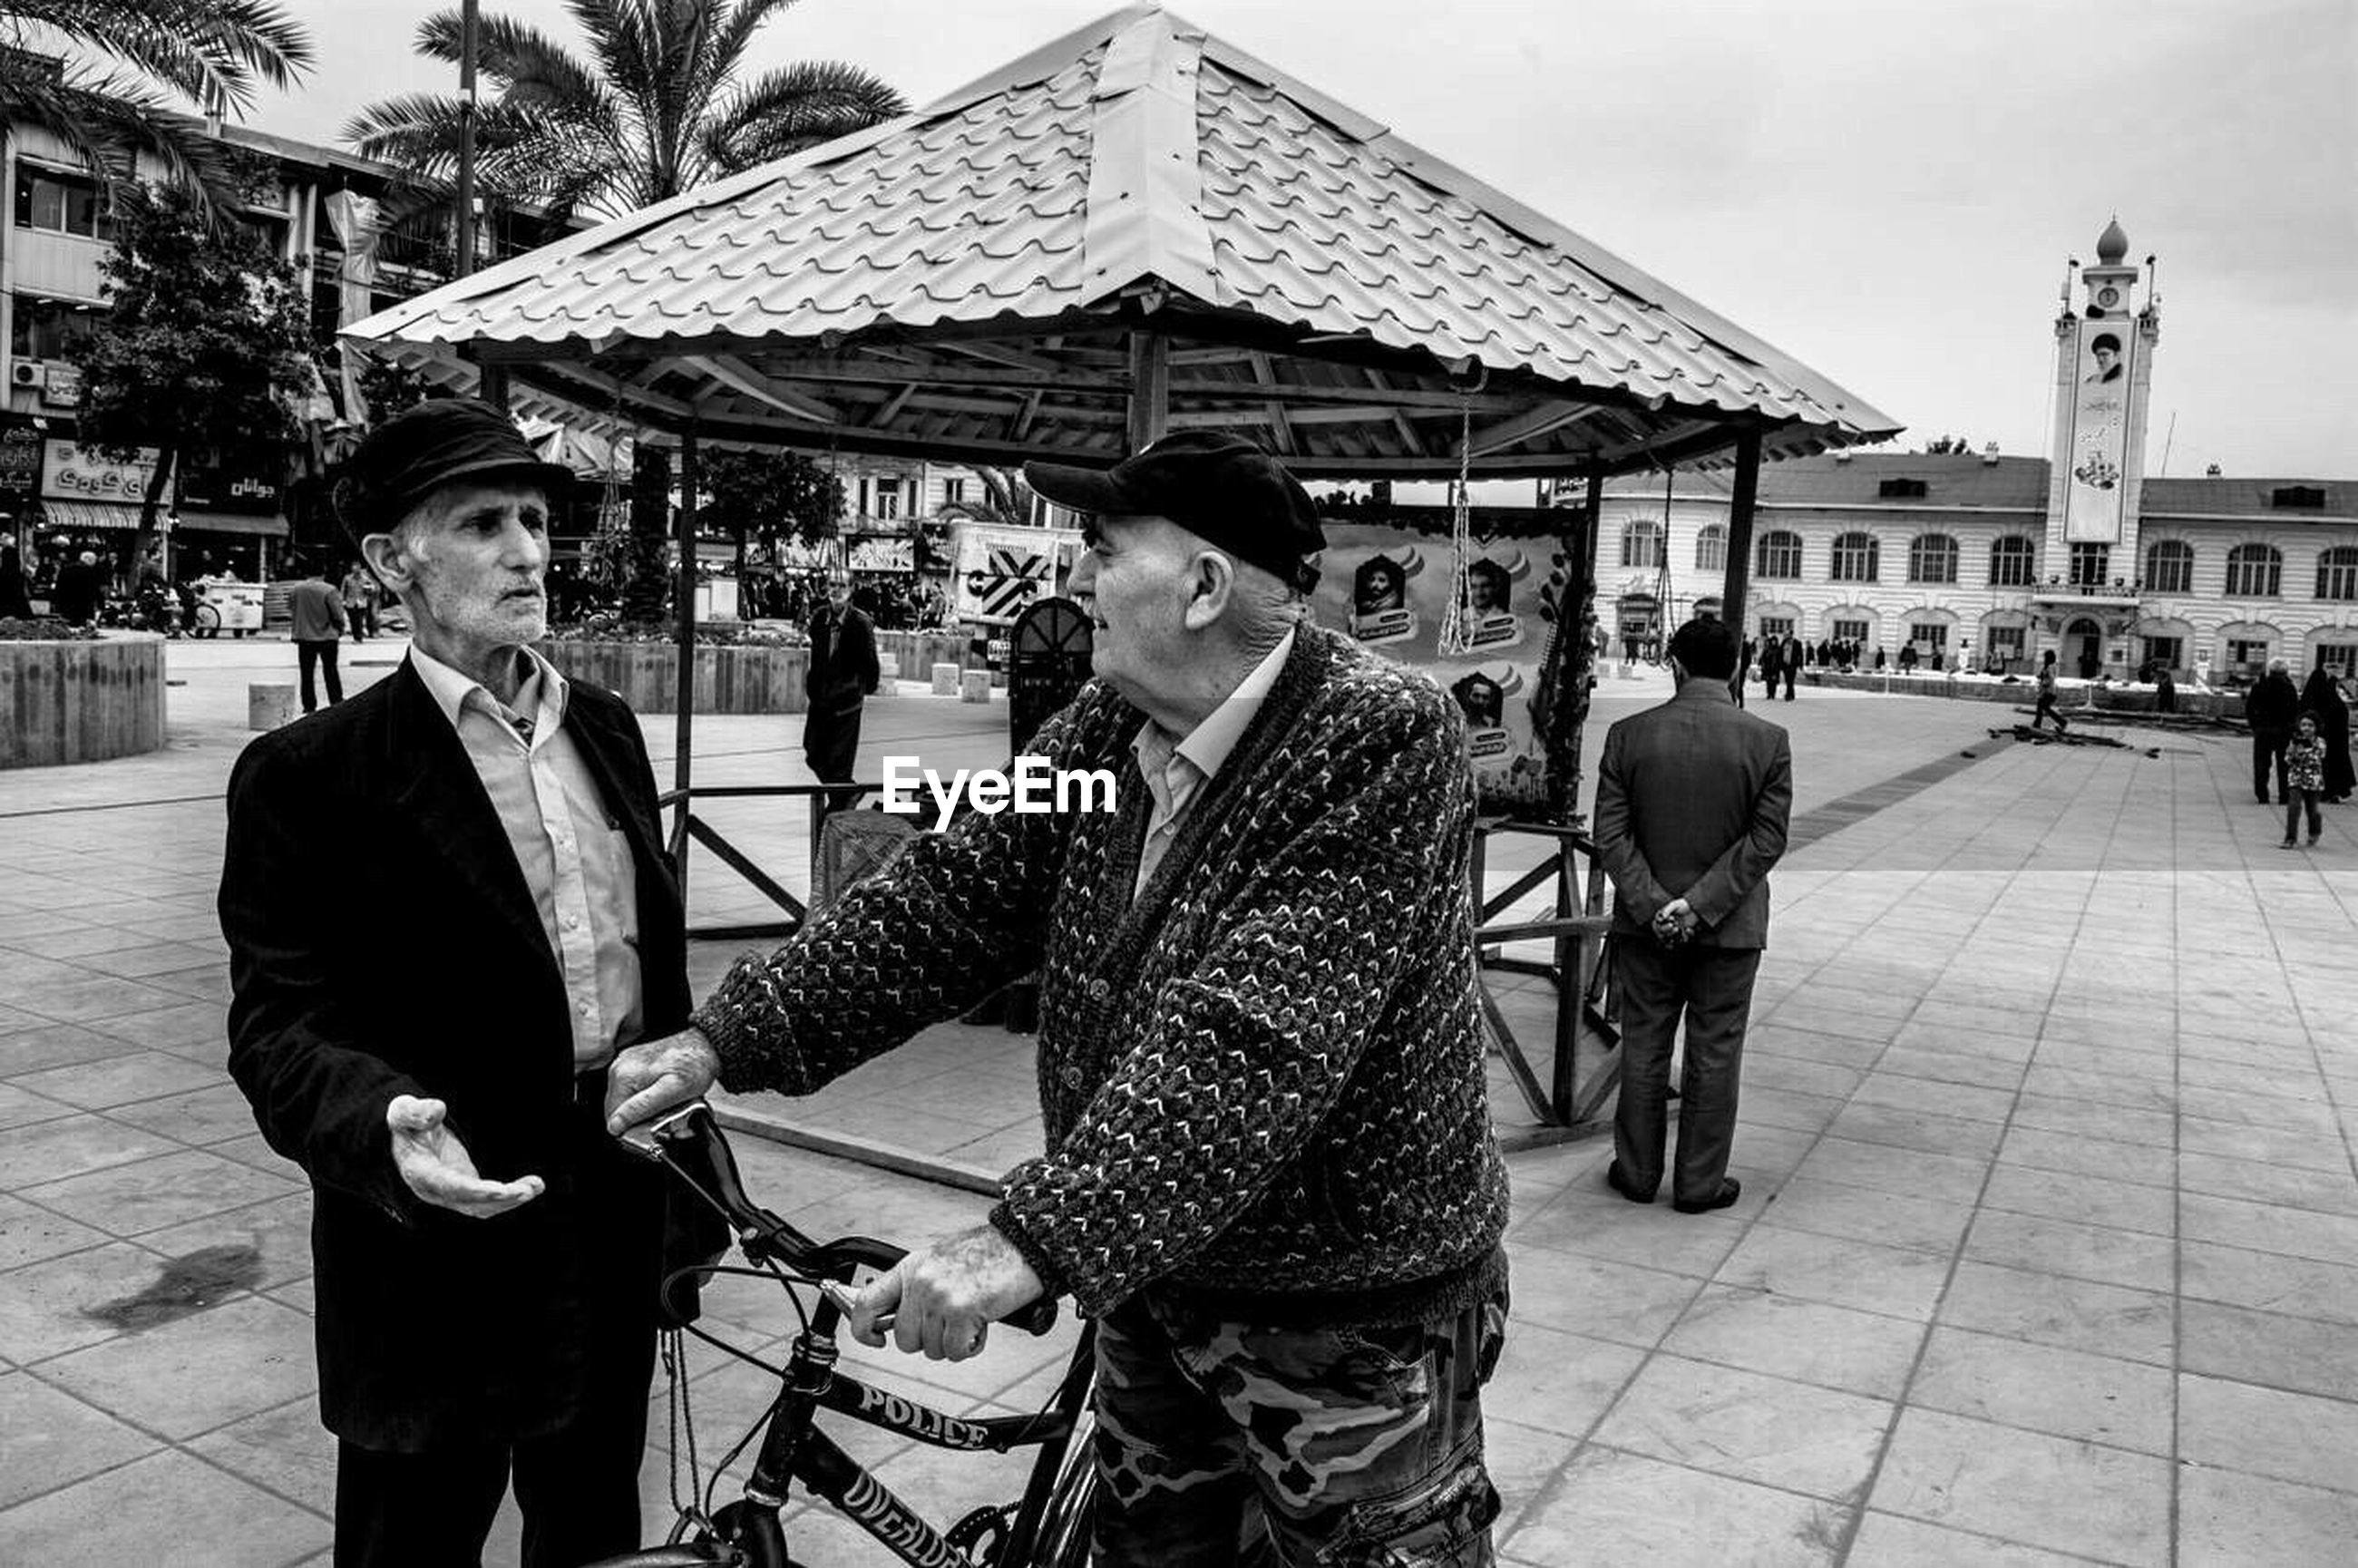 lifestyles, building exterior, casual clothing, leisure activity, built structure, architecture, togetherness, men, city, person, bonding, full length, love, street, standing, city life, young men